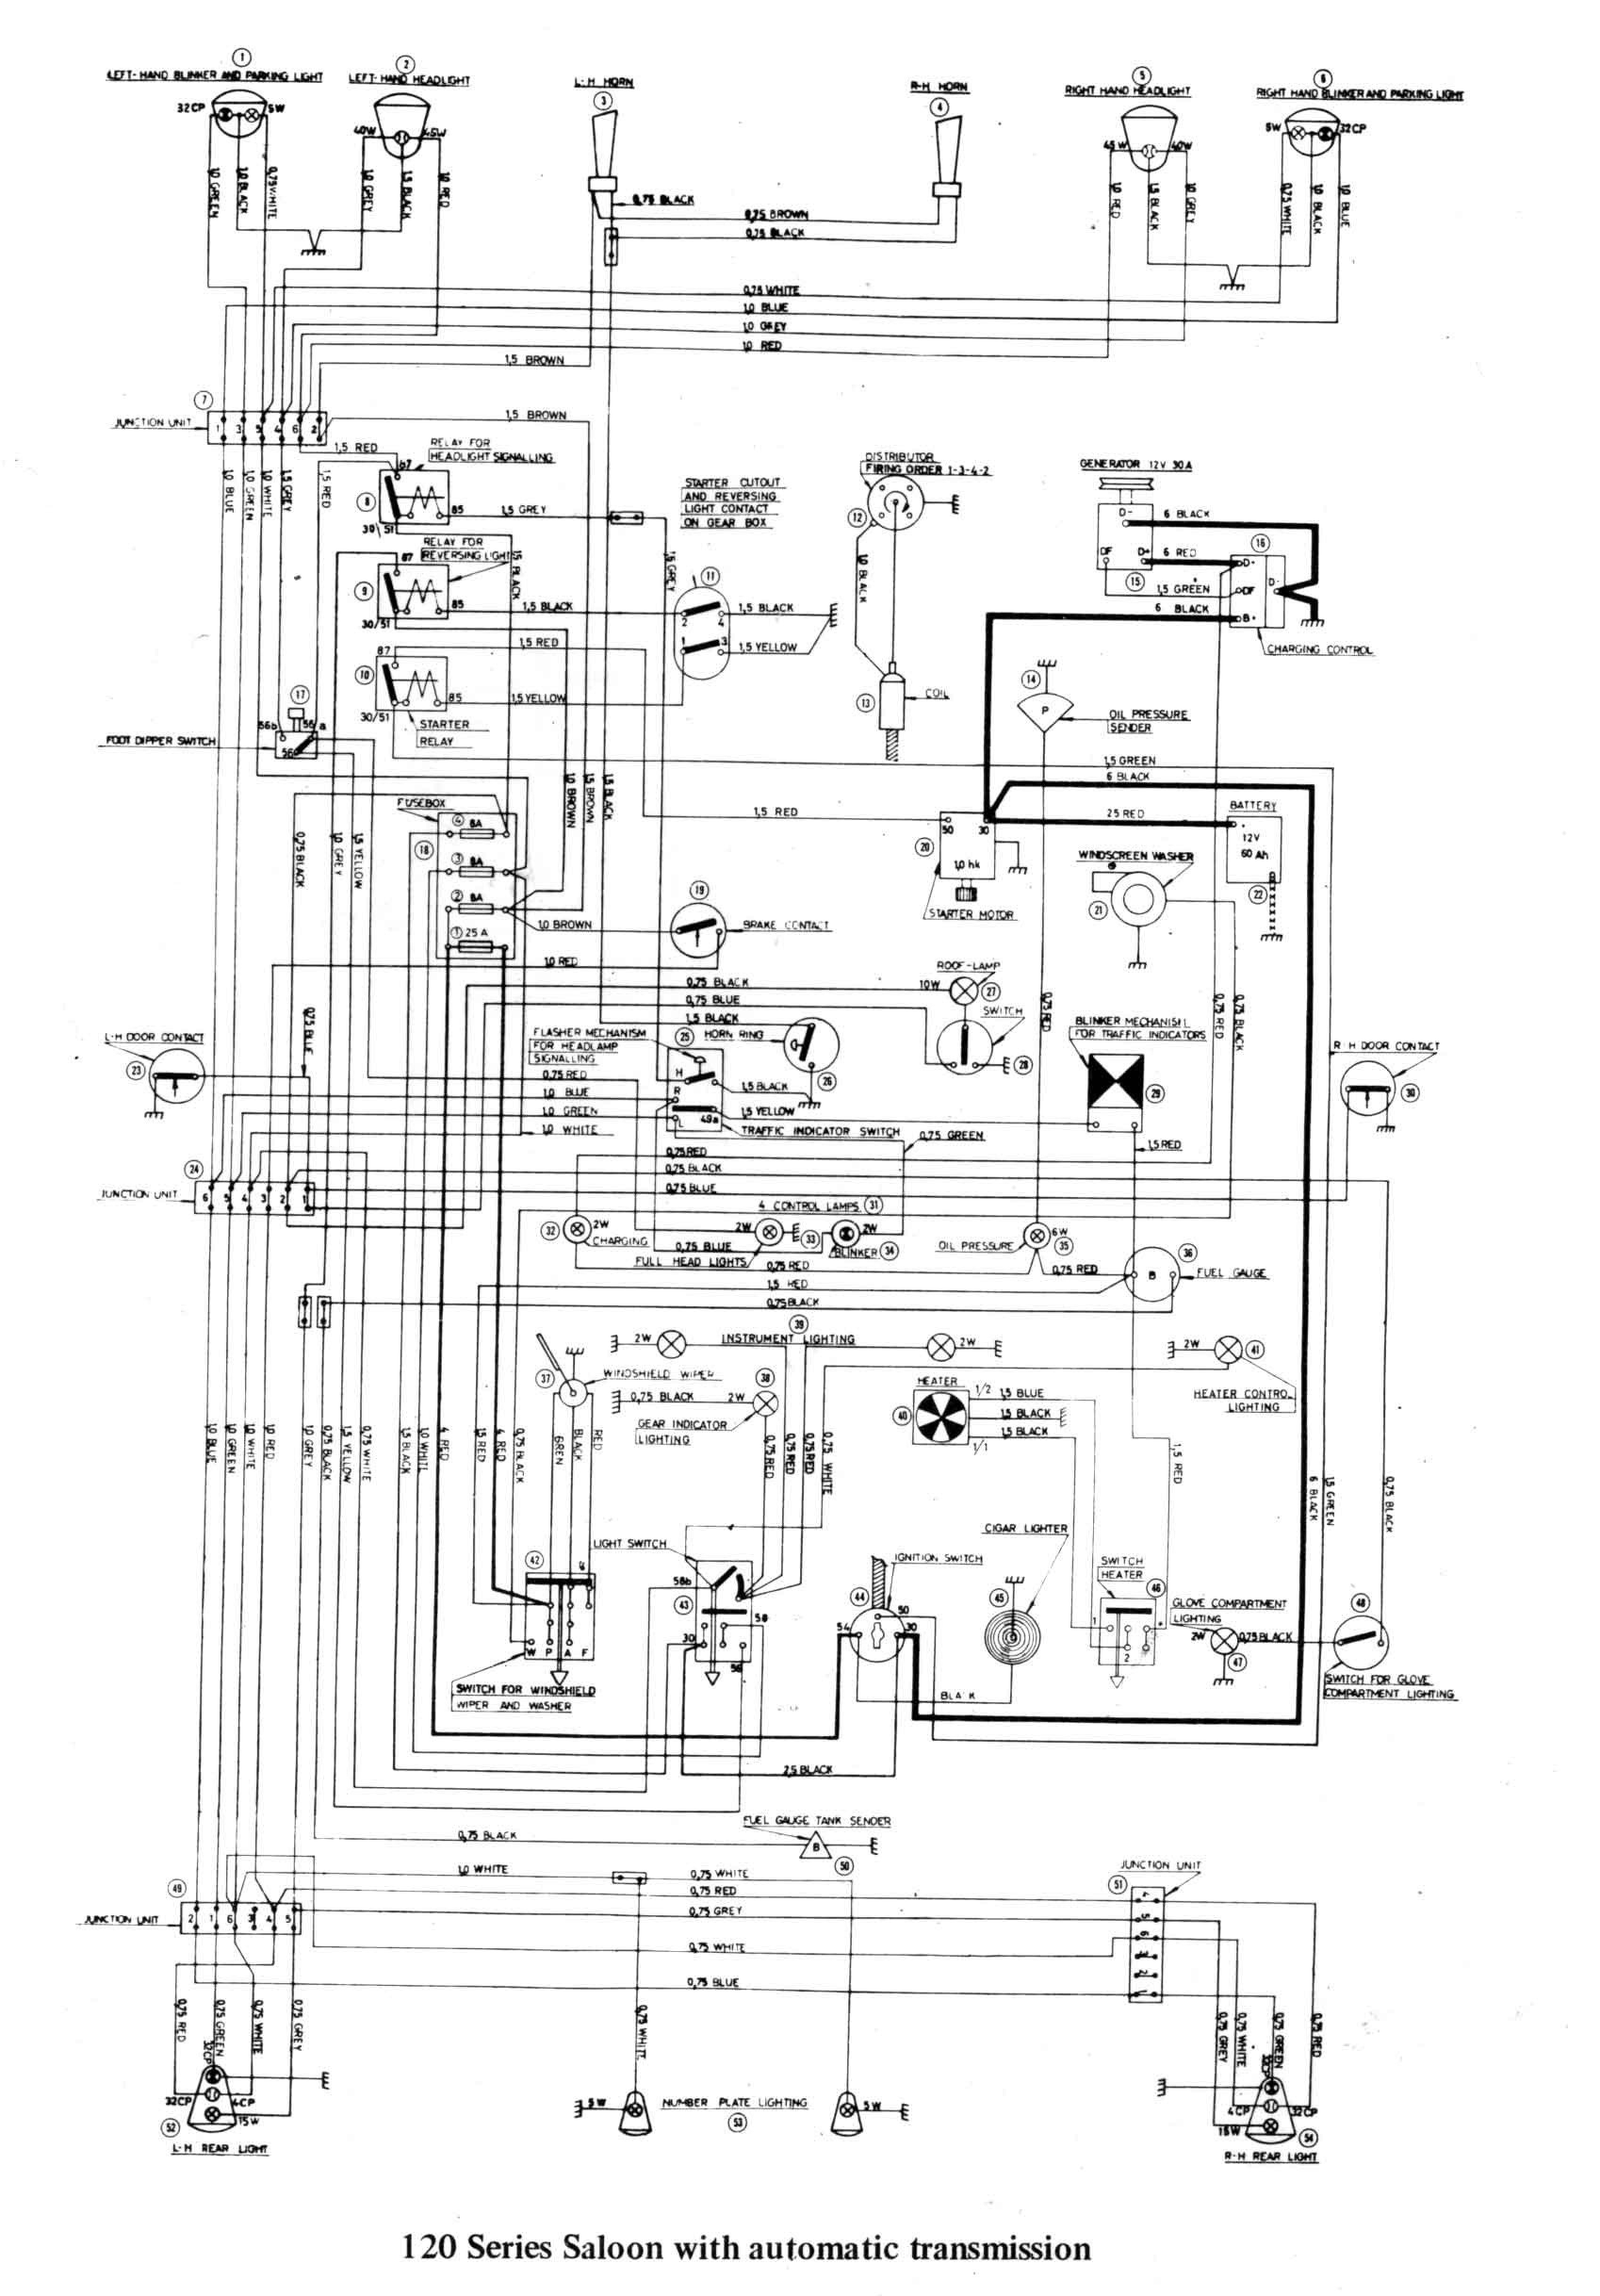 harley turn signal wiring diagram Download-Turn Signal Wiring Diagram Elegant Turn Signal Wiring Diagram New Sw Em Od Retrofitting Vintage Volvo 12-t